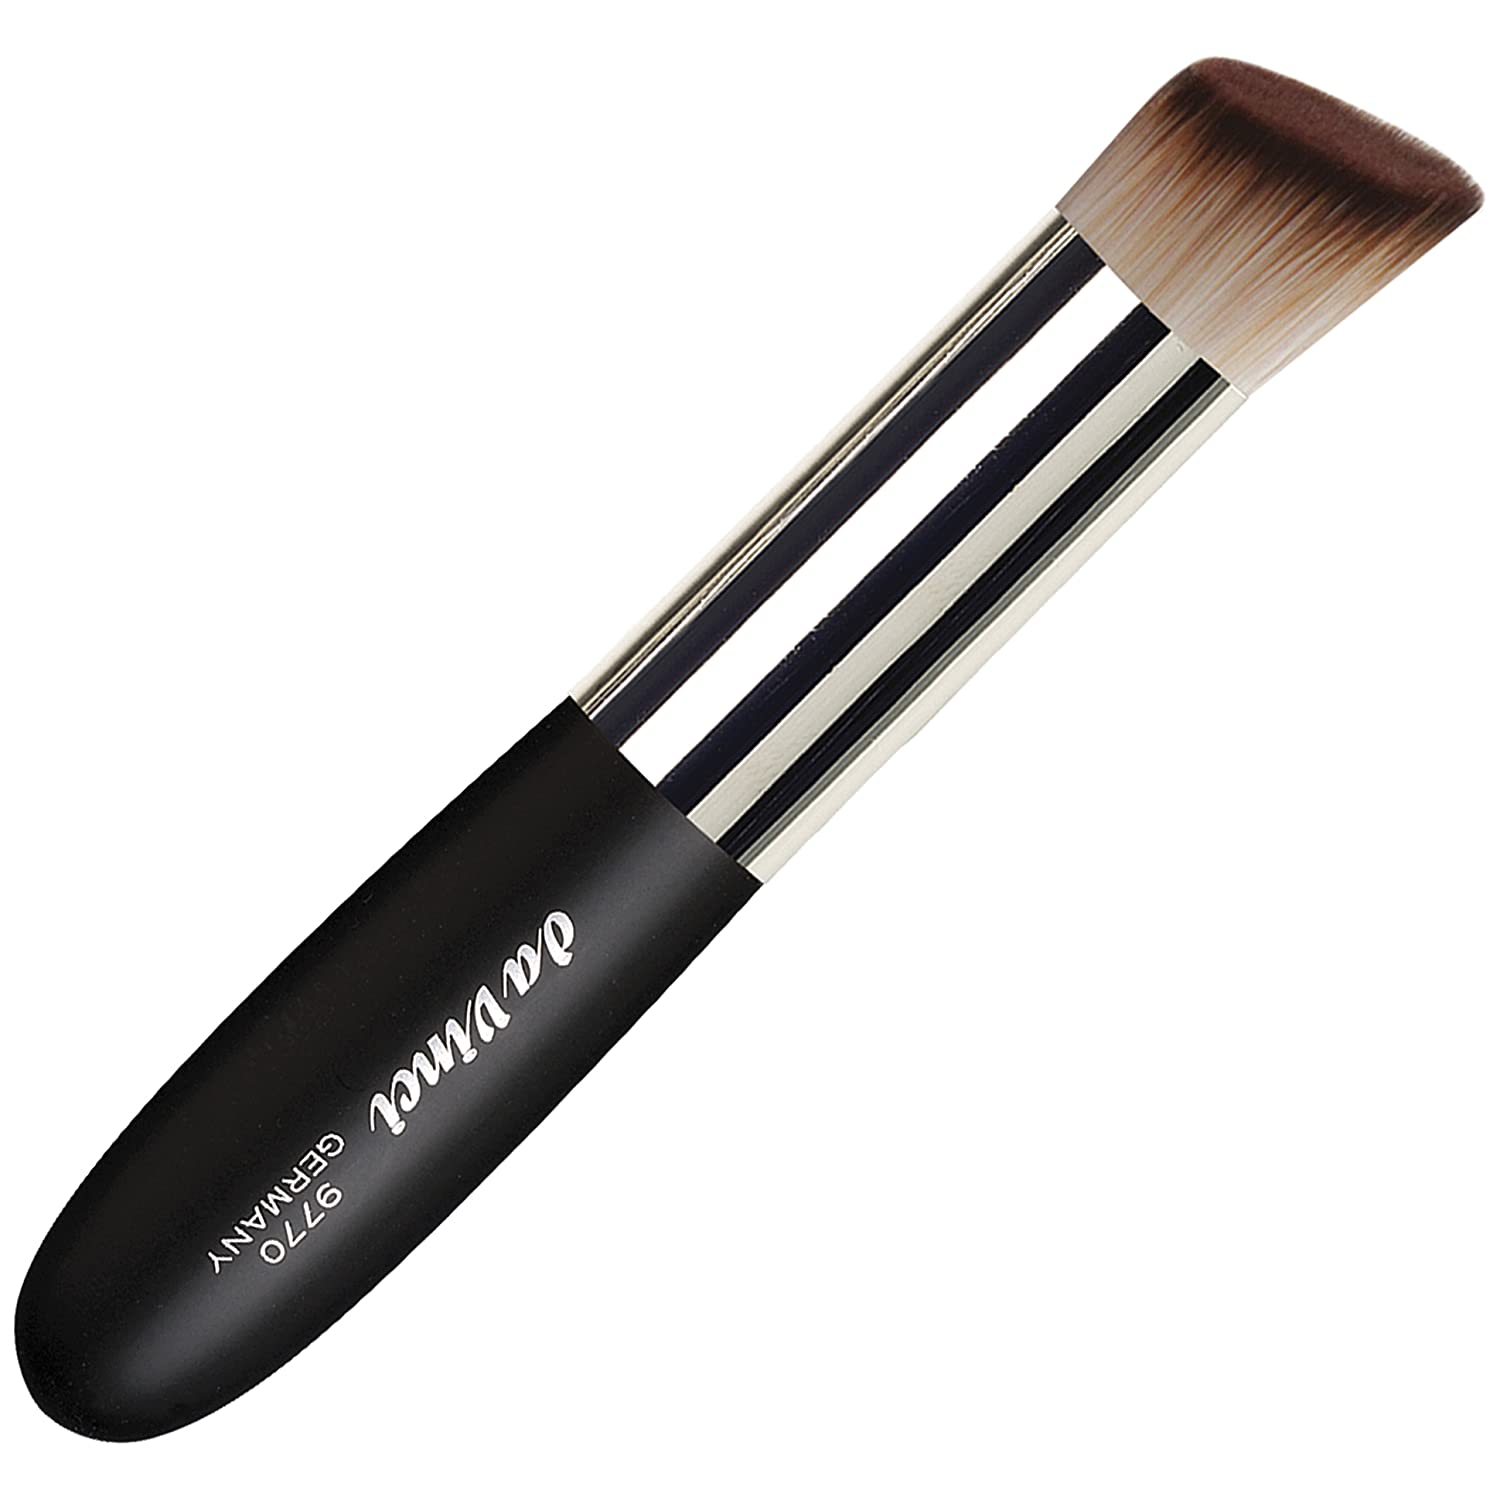 da Vinci Series 9770 Synthetic Foundation and Creamy Blush Slant Liquid Makeup Brush, 43.7-Gram